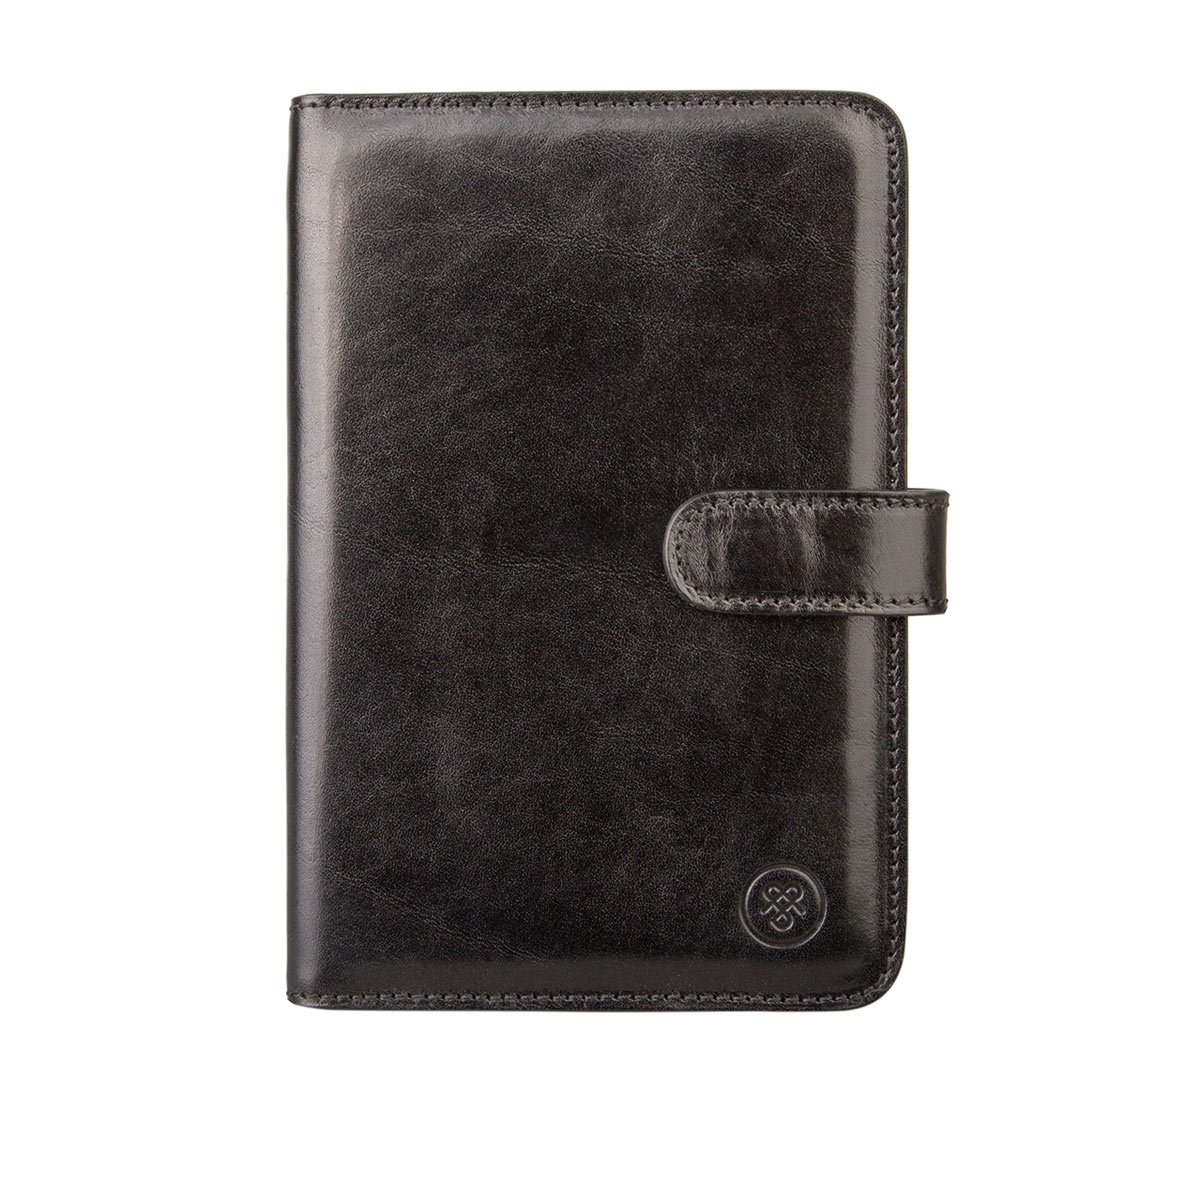 Vieste/_849 Maxwell Scott Luxury Handcrafted Italian Leather Travel Document Wallet Vieste